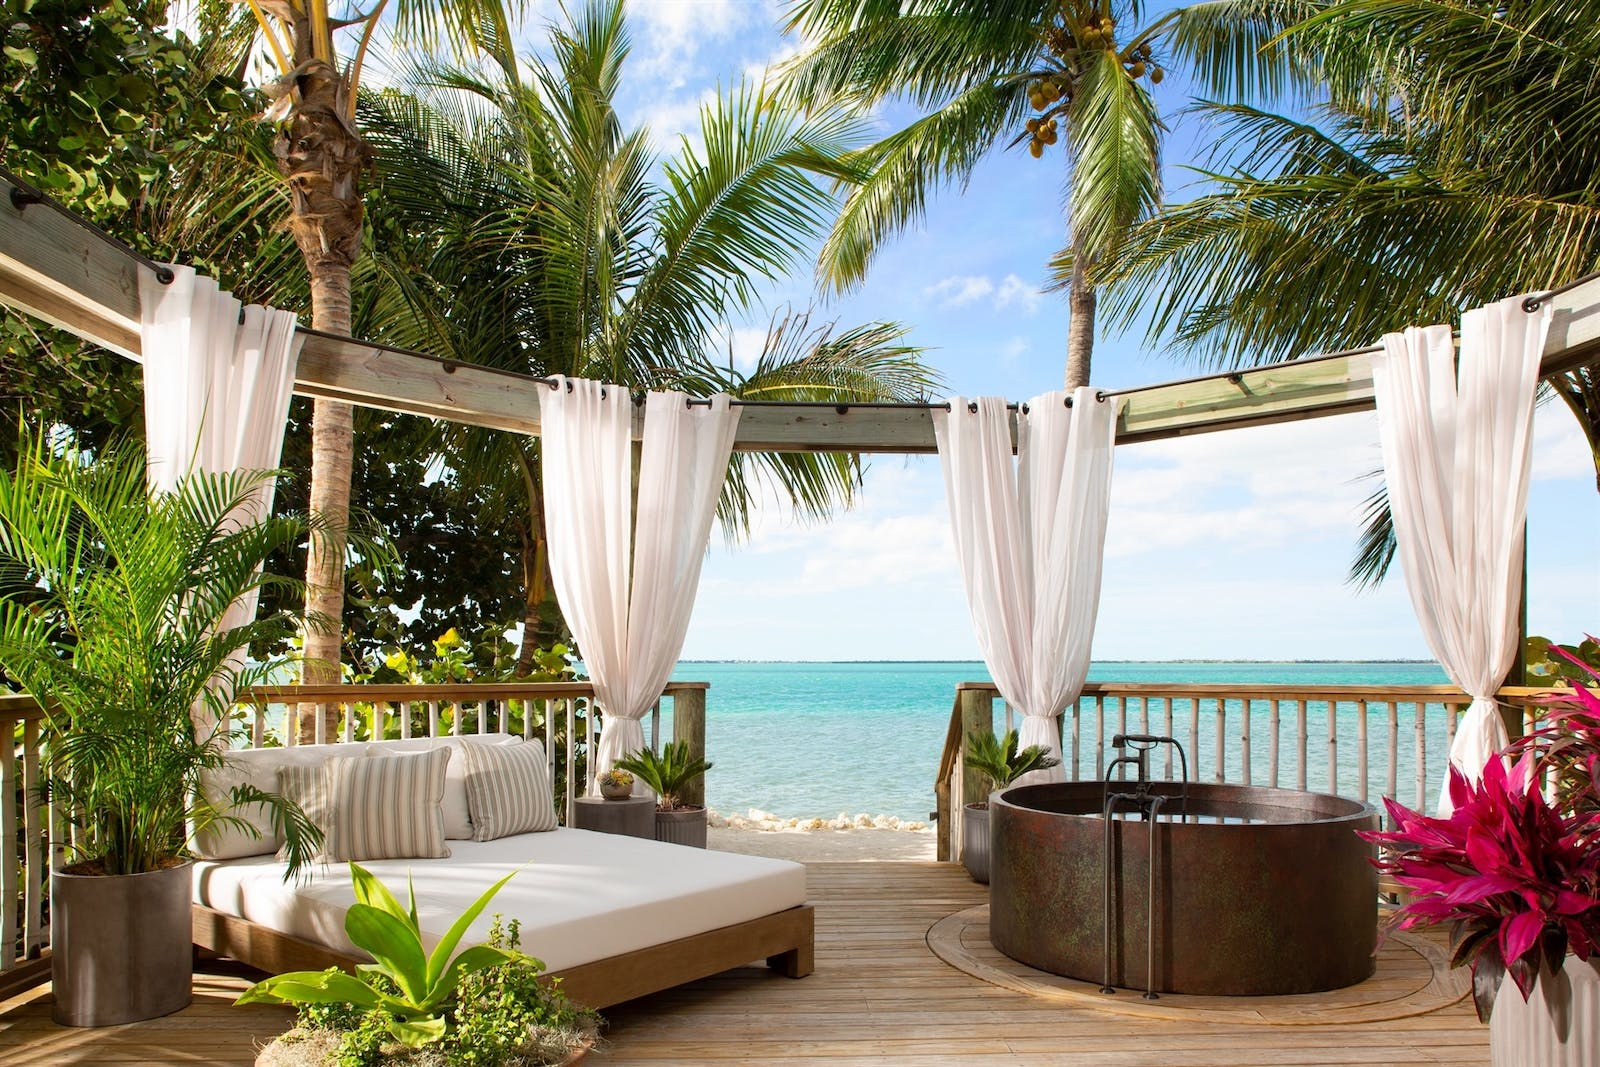 island romance suite balcony at little palm island